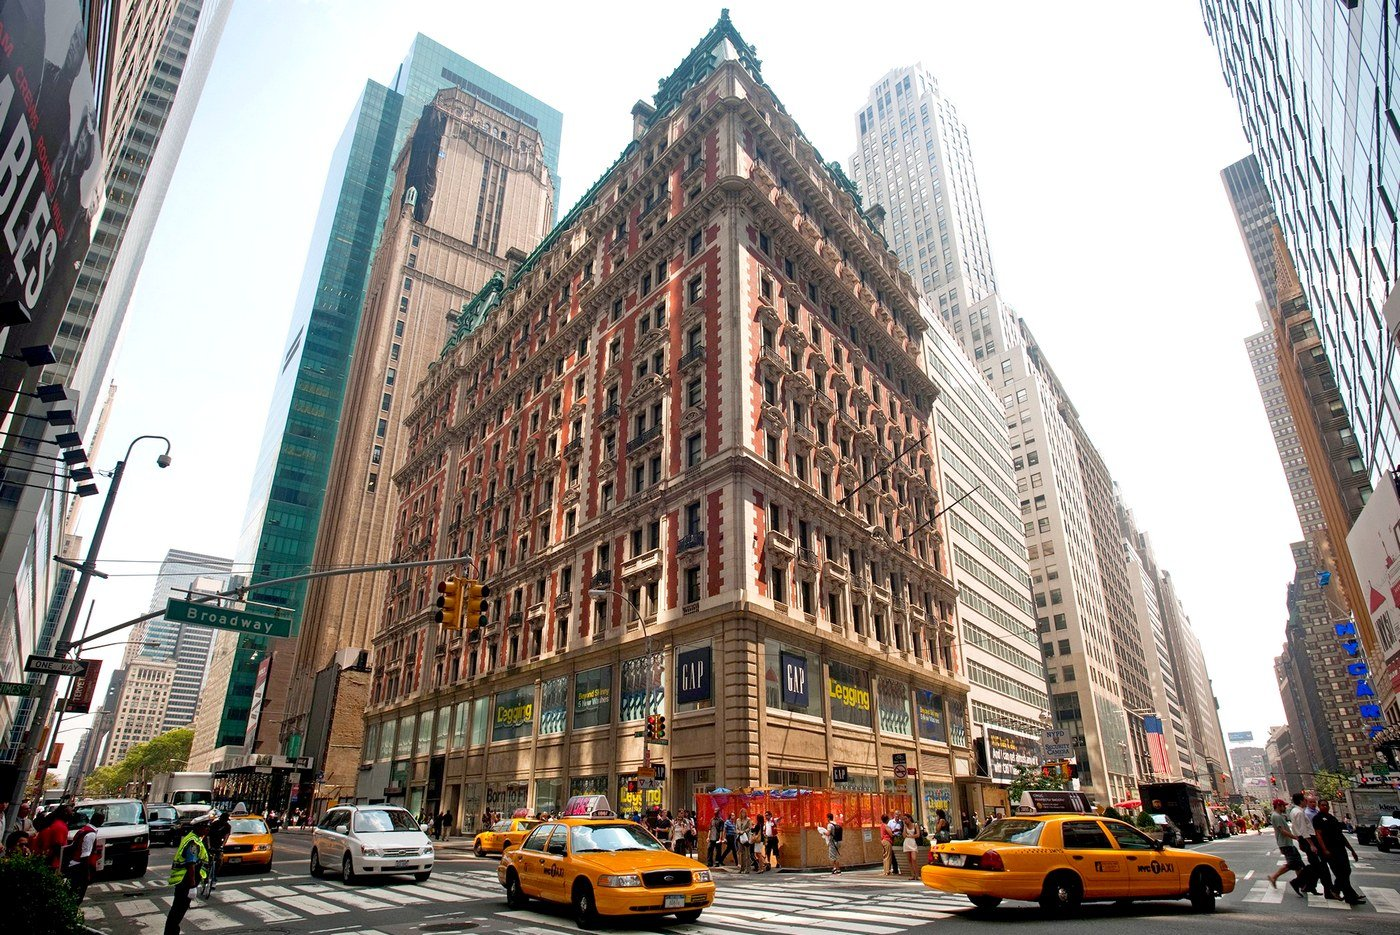 75% Off Online Voucher Code New York Hotel